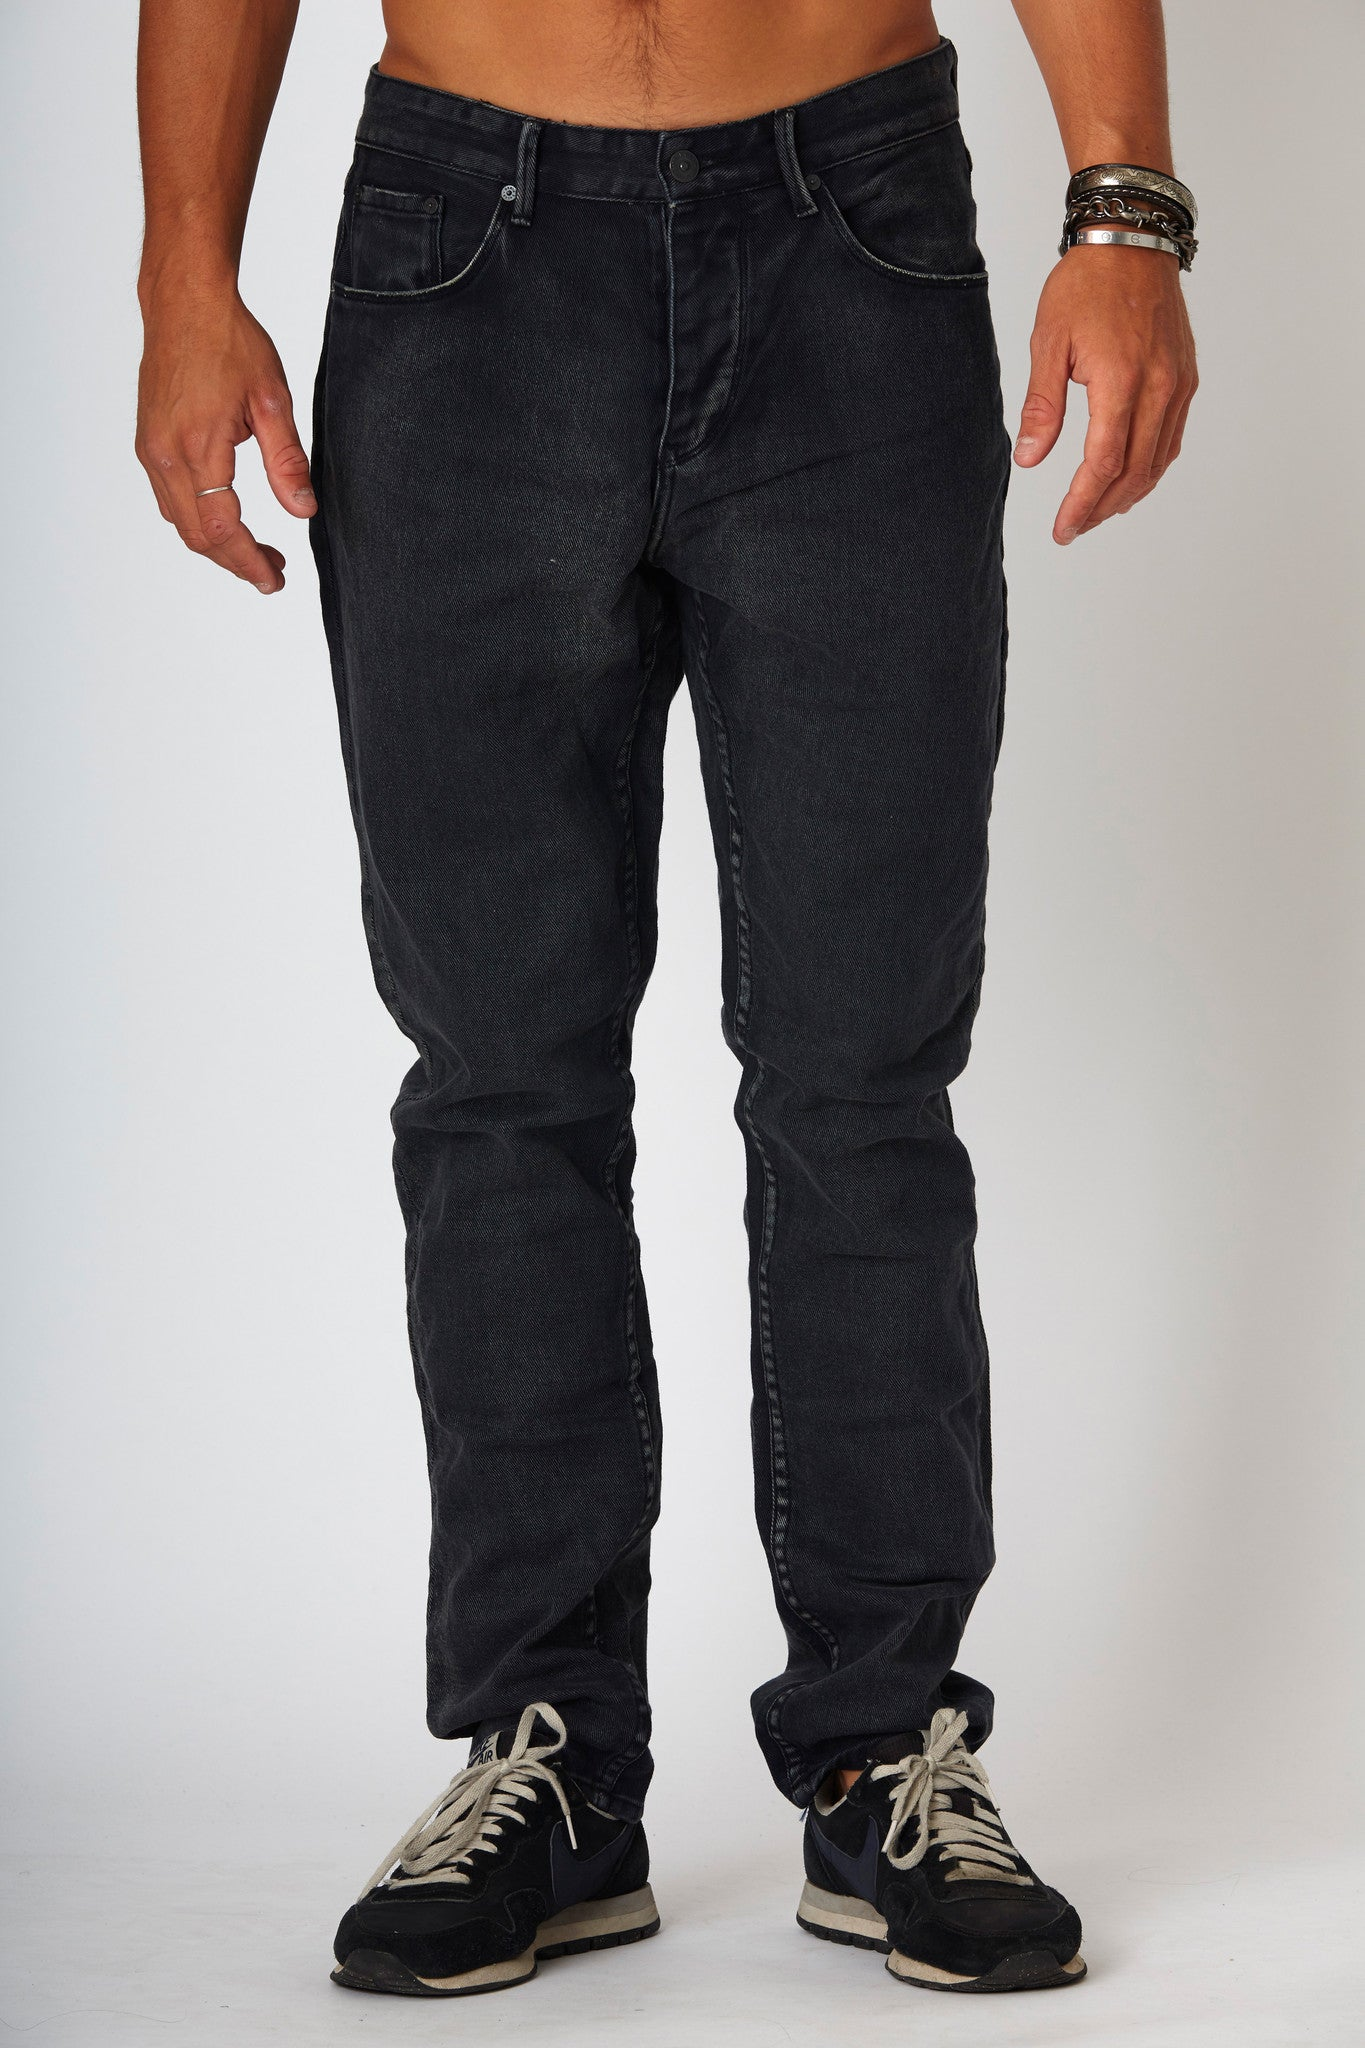 #2A23 Straight Rigid Raven Black - denimcolab